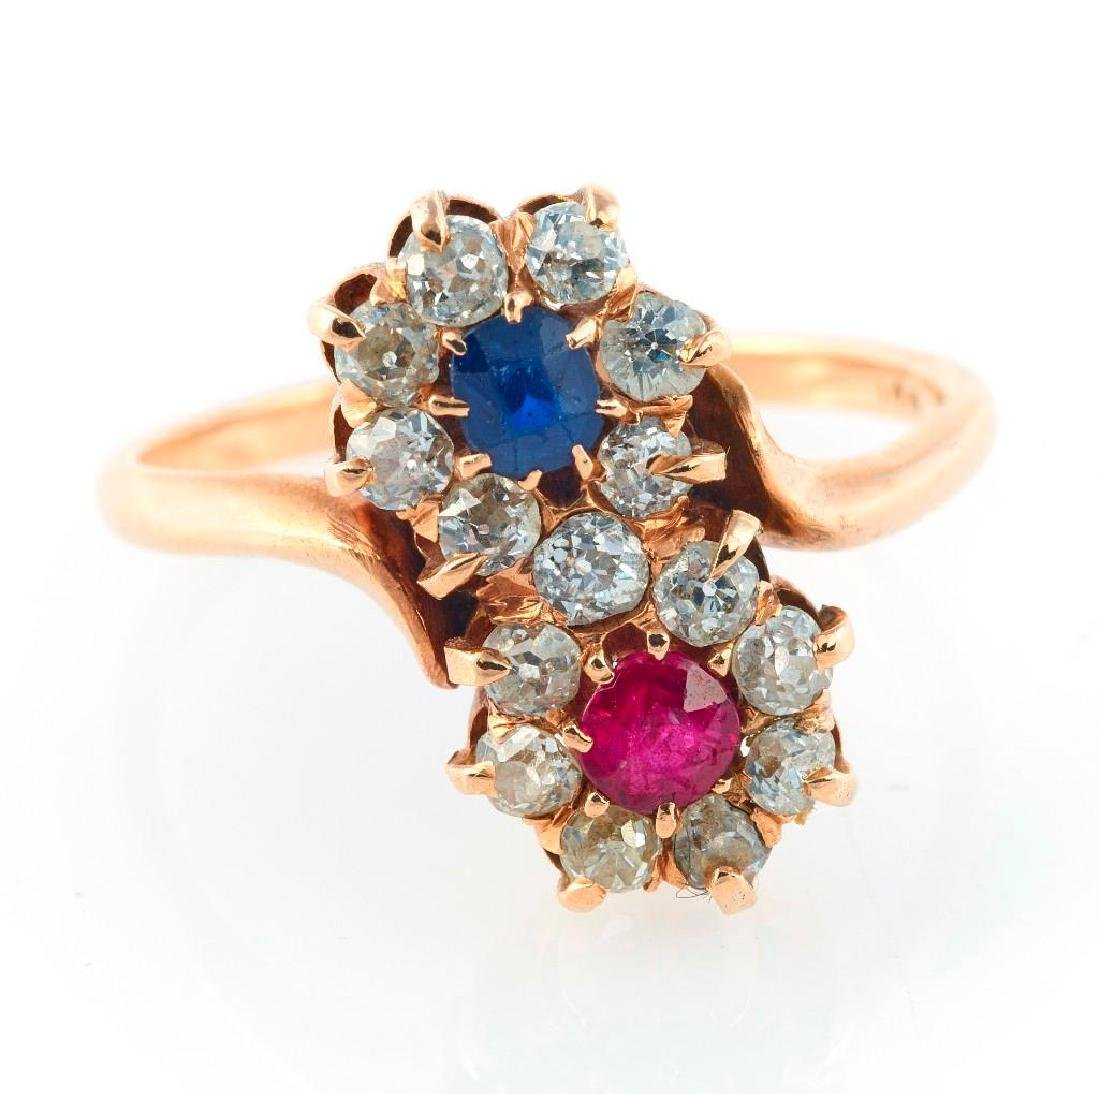 Ruby, sapphire, diamond and 14k gold flower ring